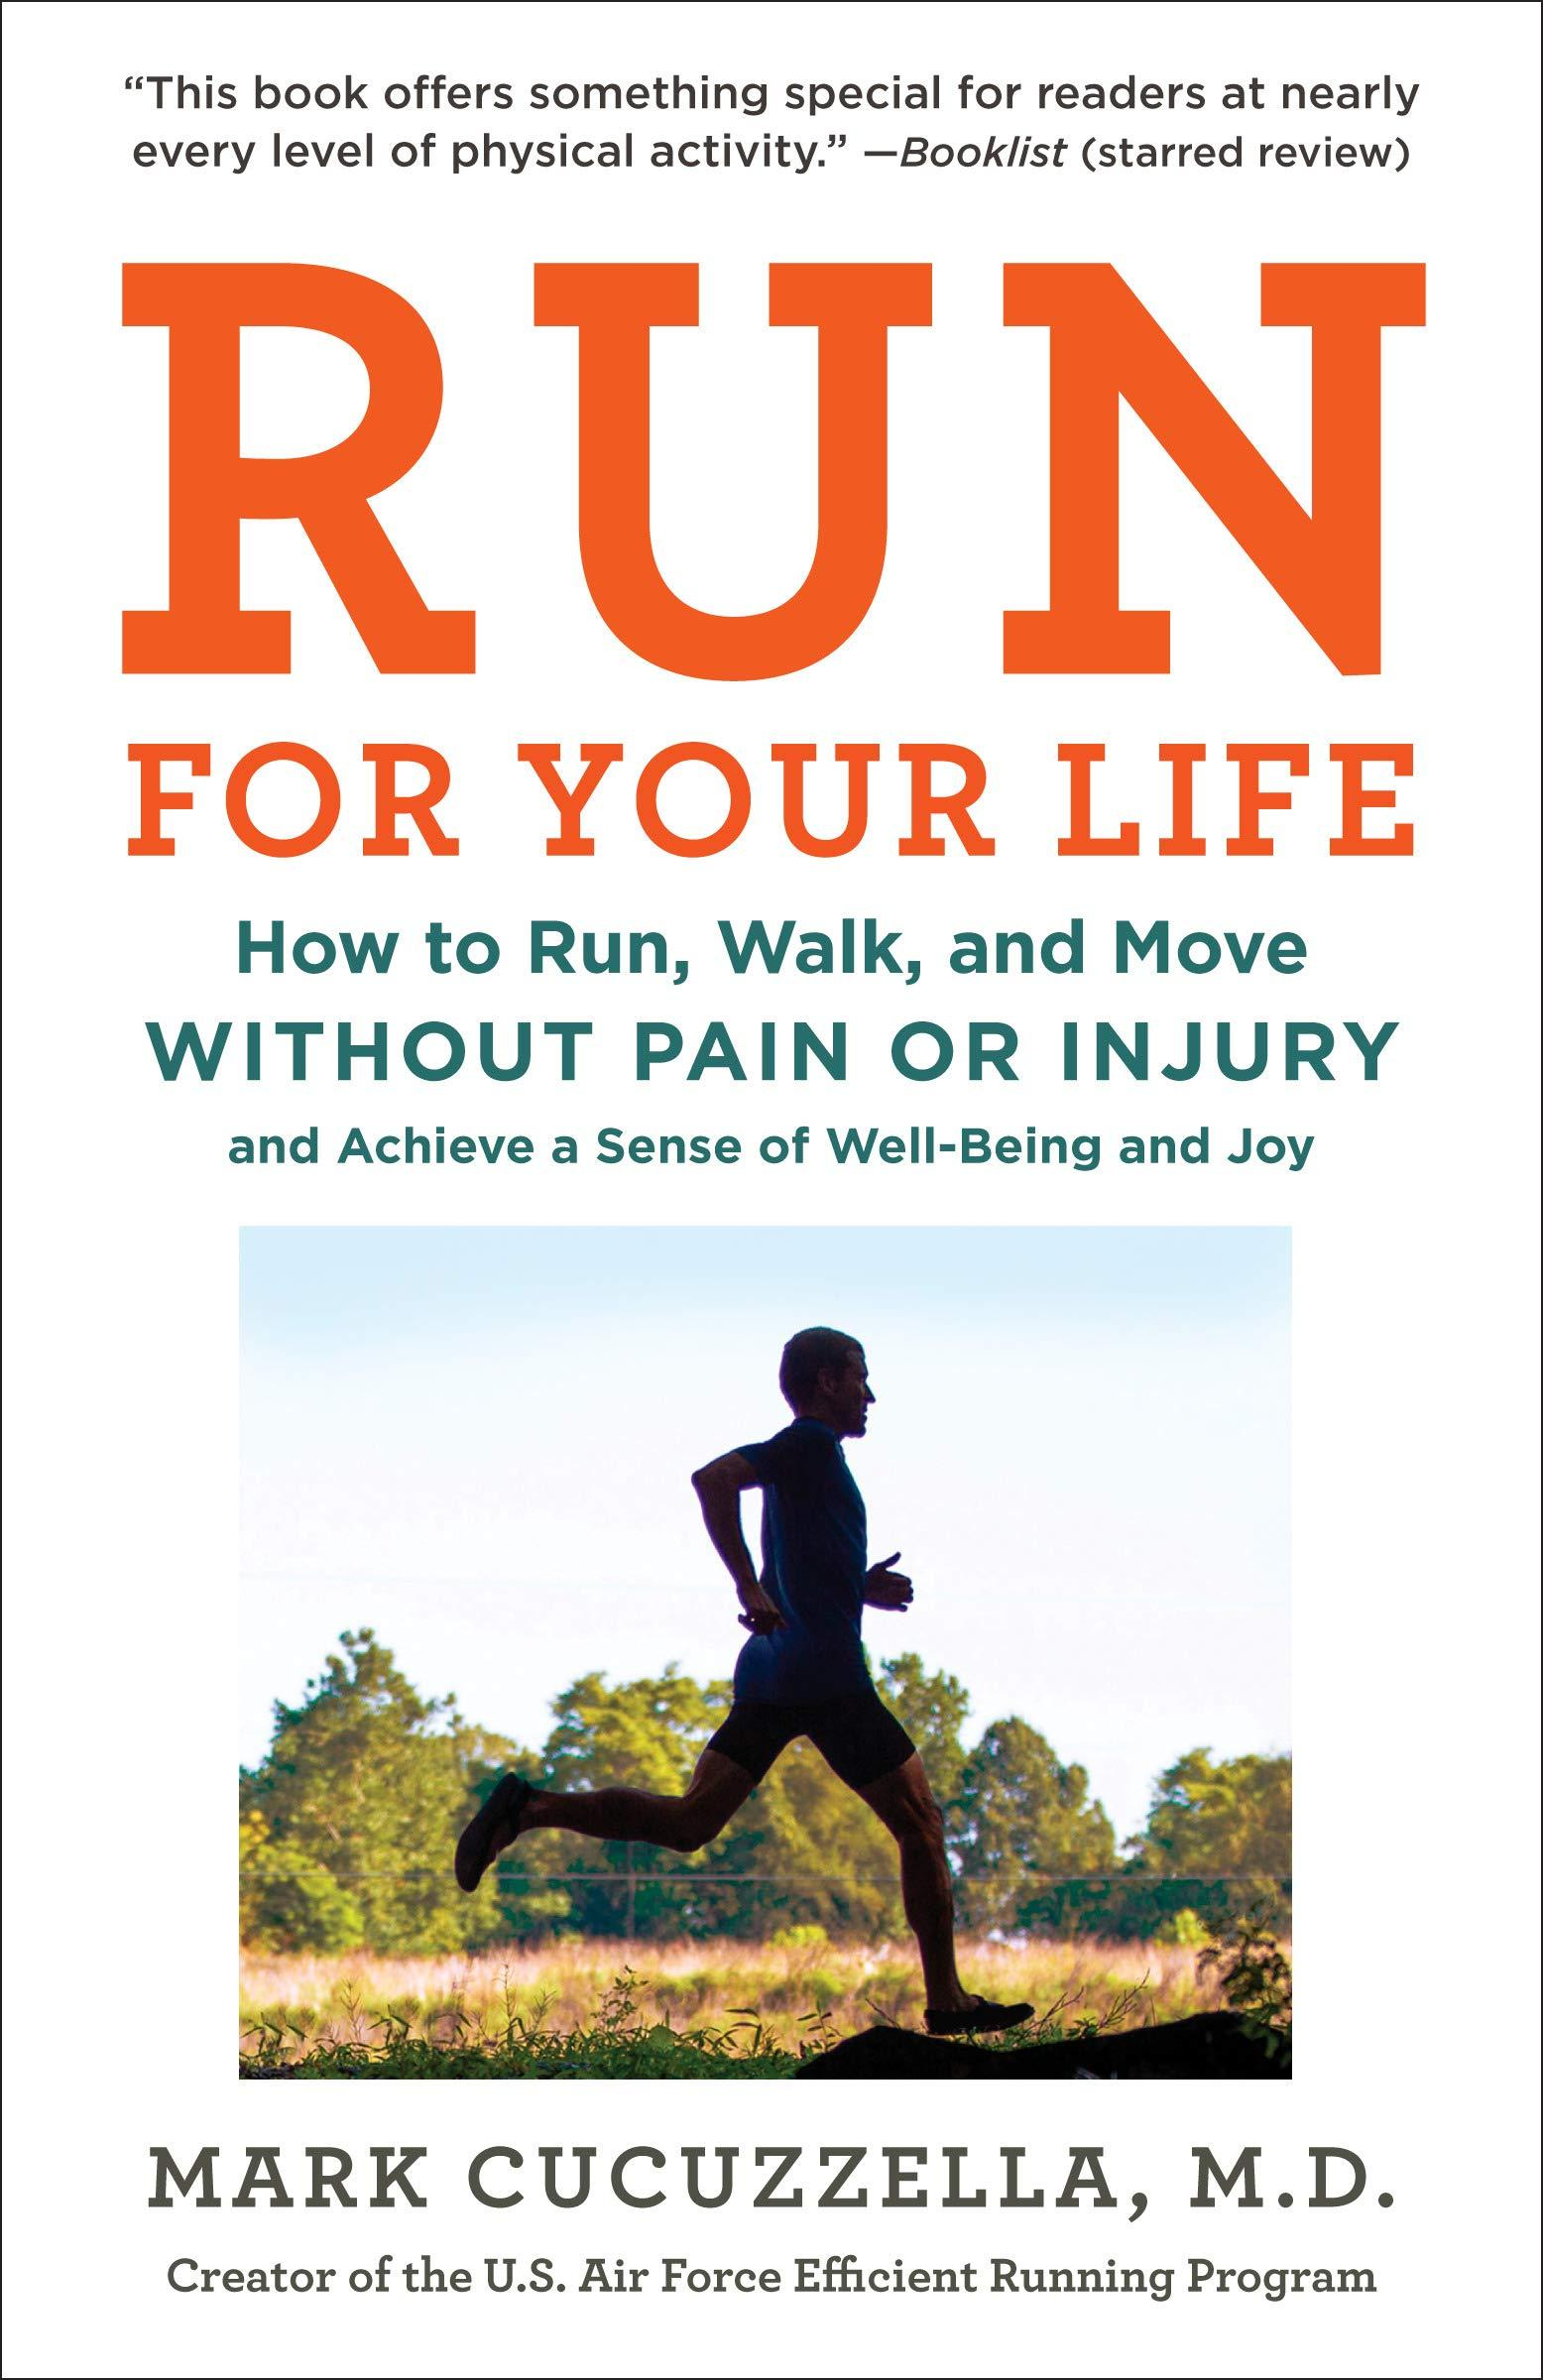 Run for Your Life: How to Run, Walk, and Move Without Pain or Injury and Achieve a Sense of Well-Being and Joy by Mark Cucuzzella